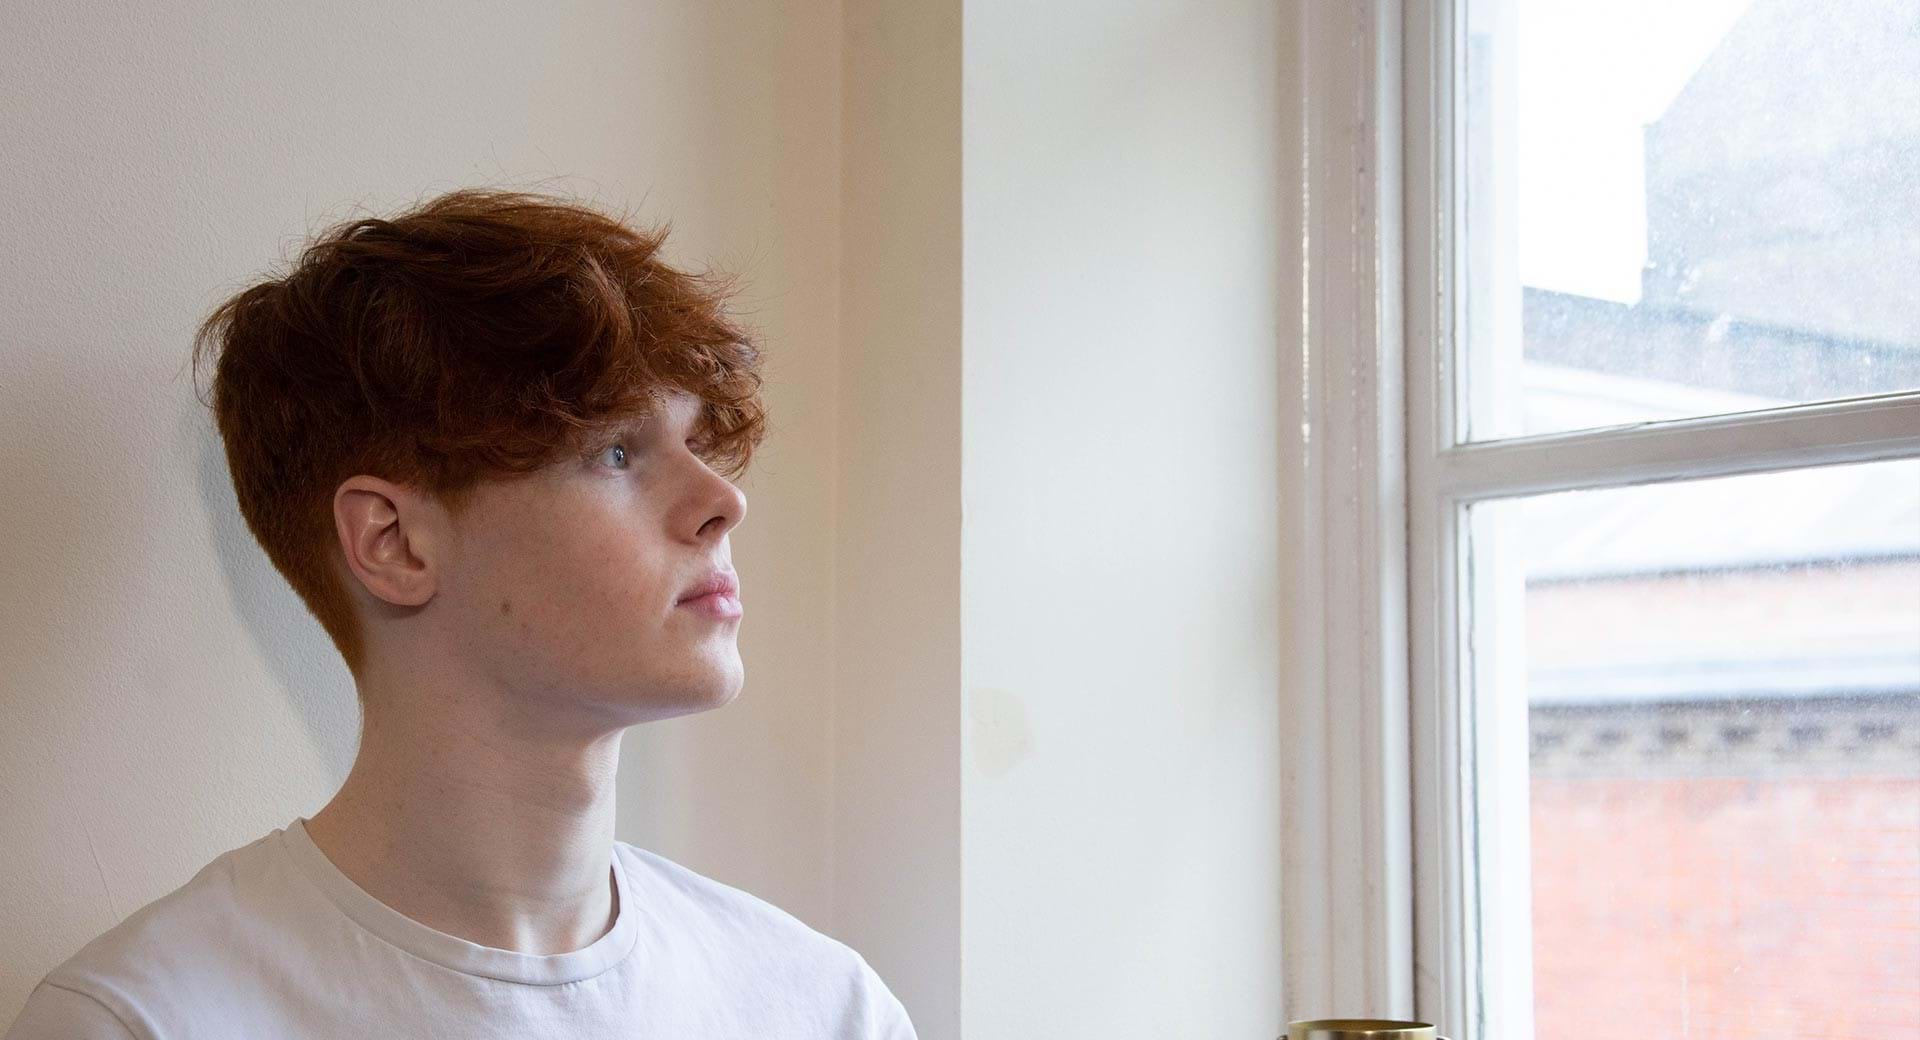 Teenage boy looks out of window